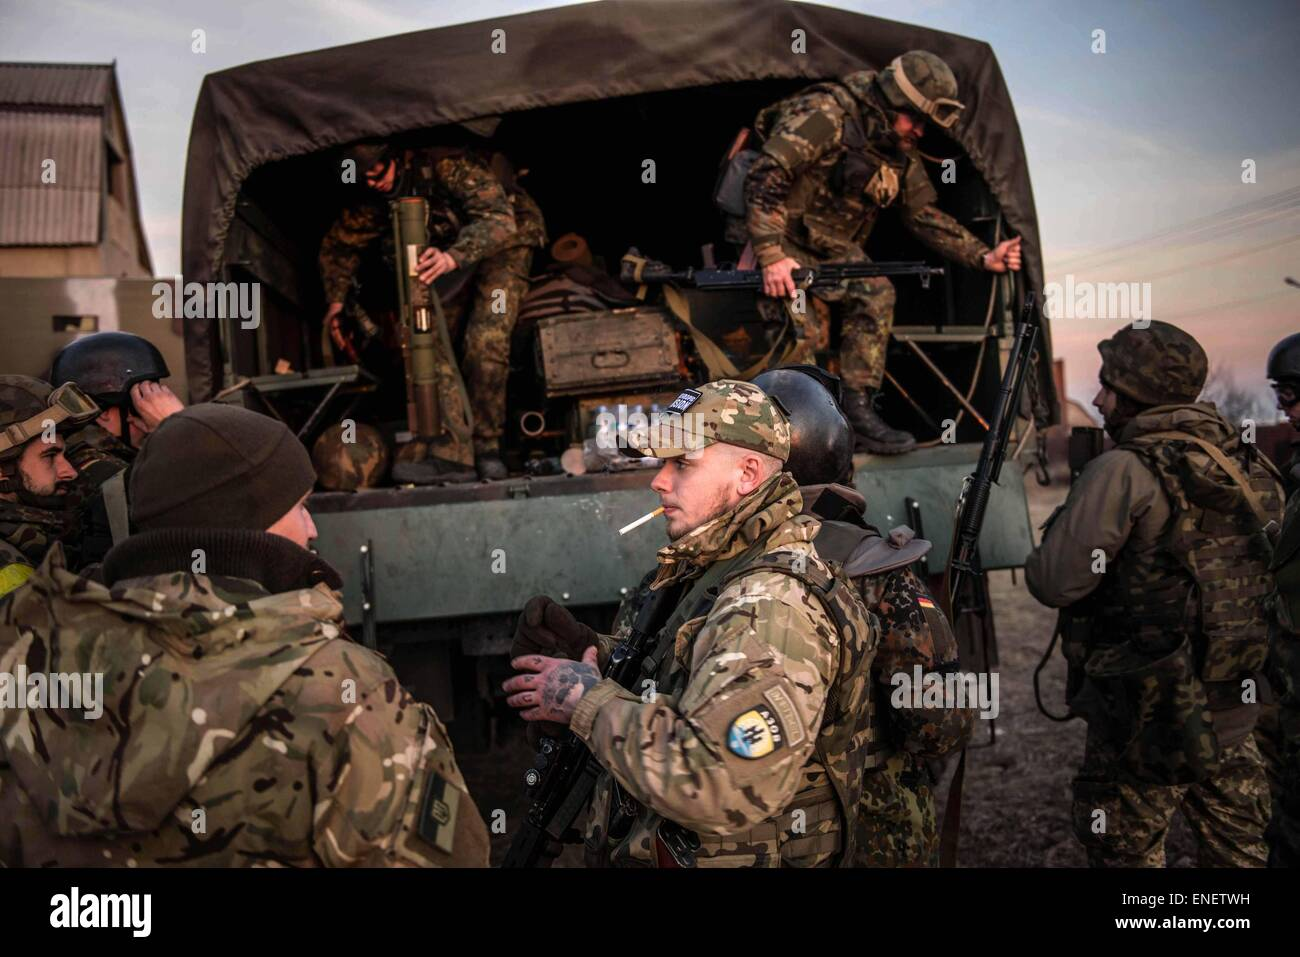 Fighters from the Azov battalion return from the front line in eastern ukraine. - Stock Image